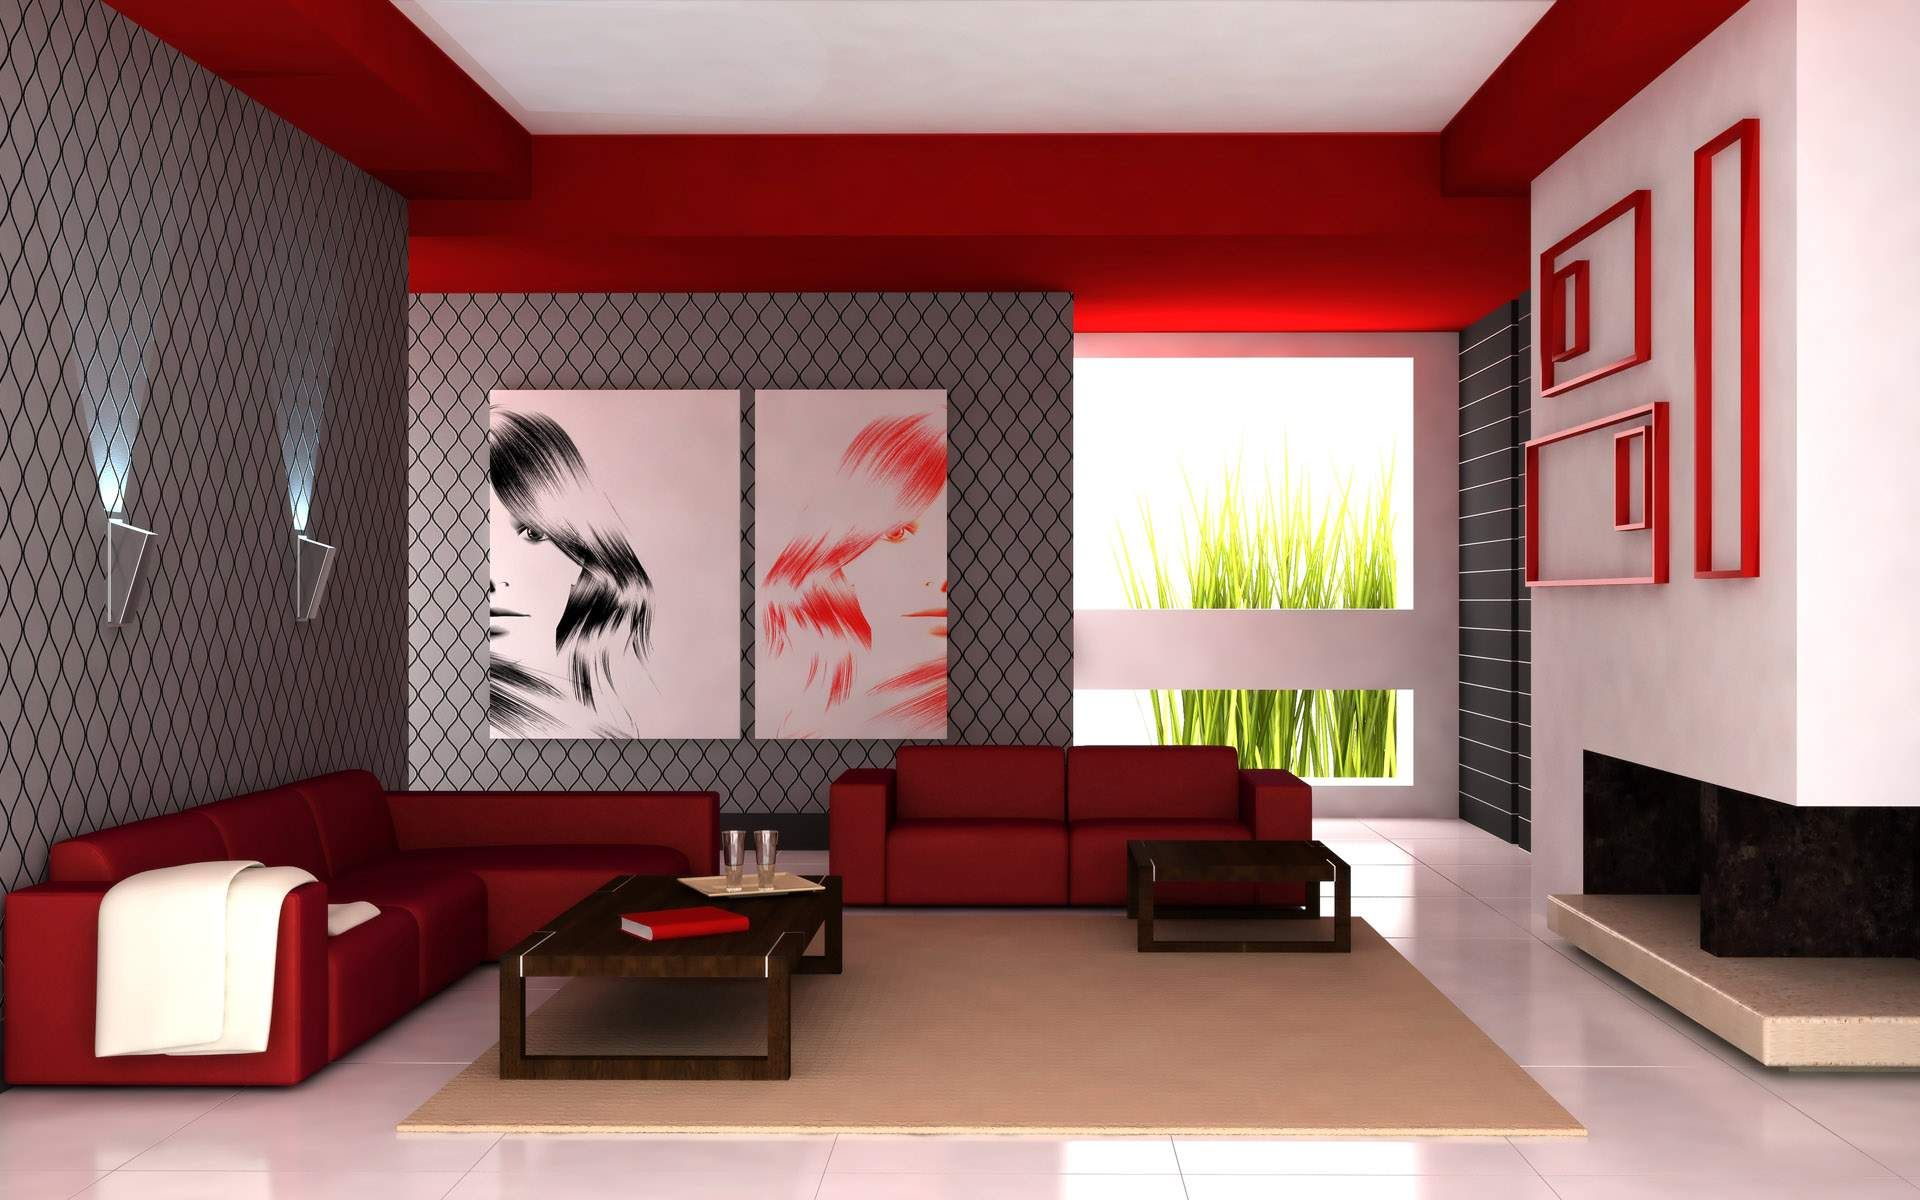 interior design living room - Living Room Interior Design Ideas